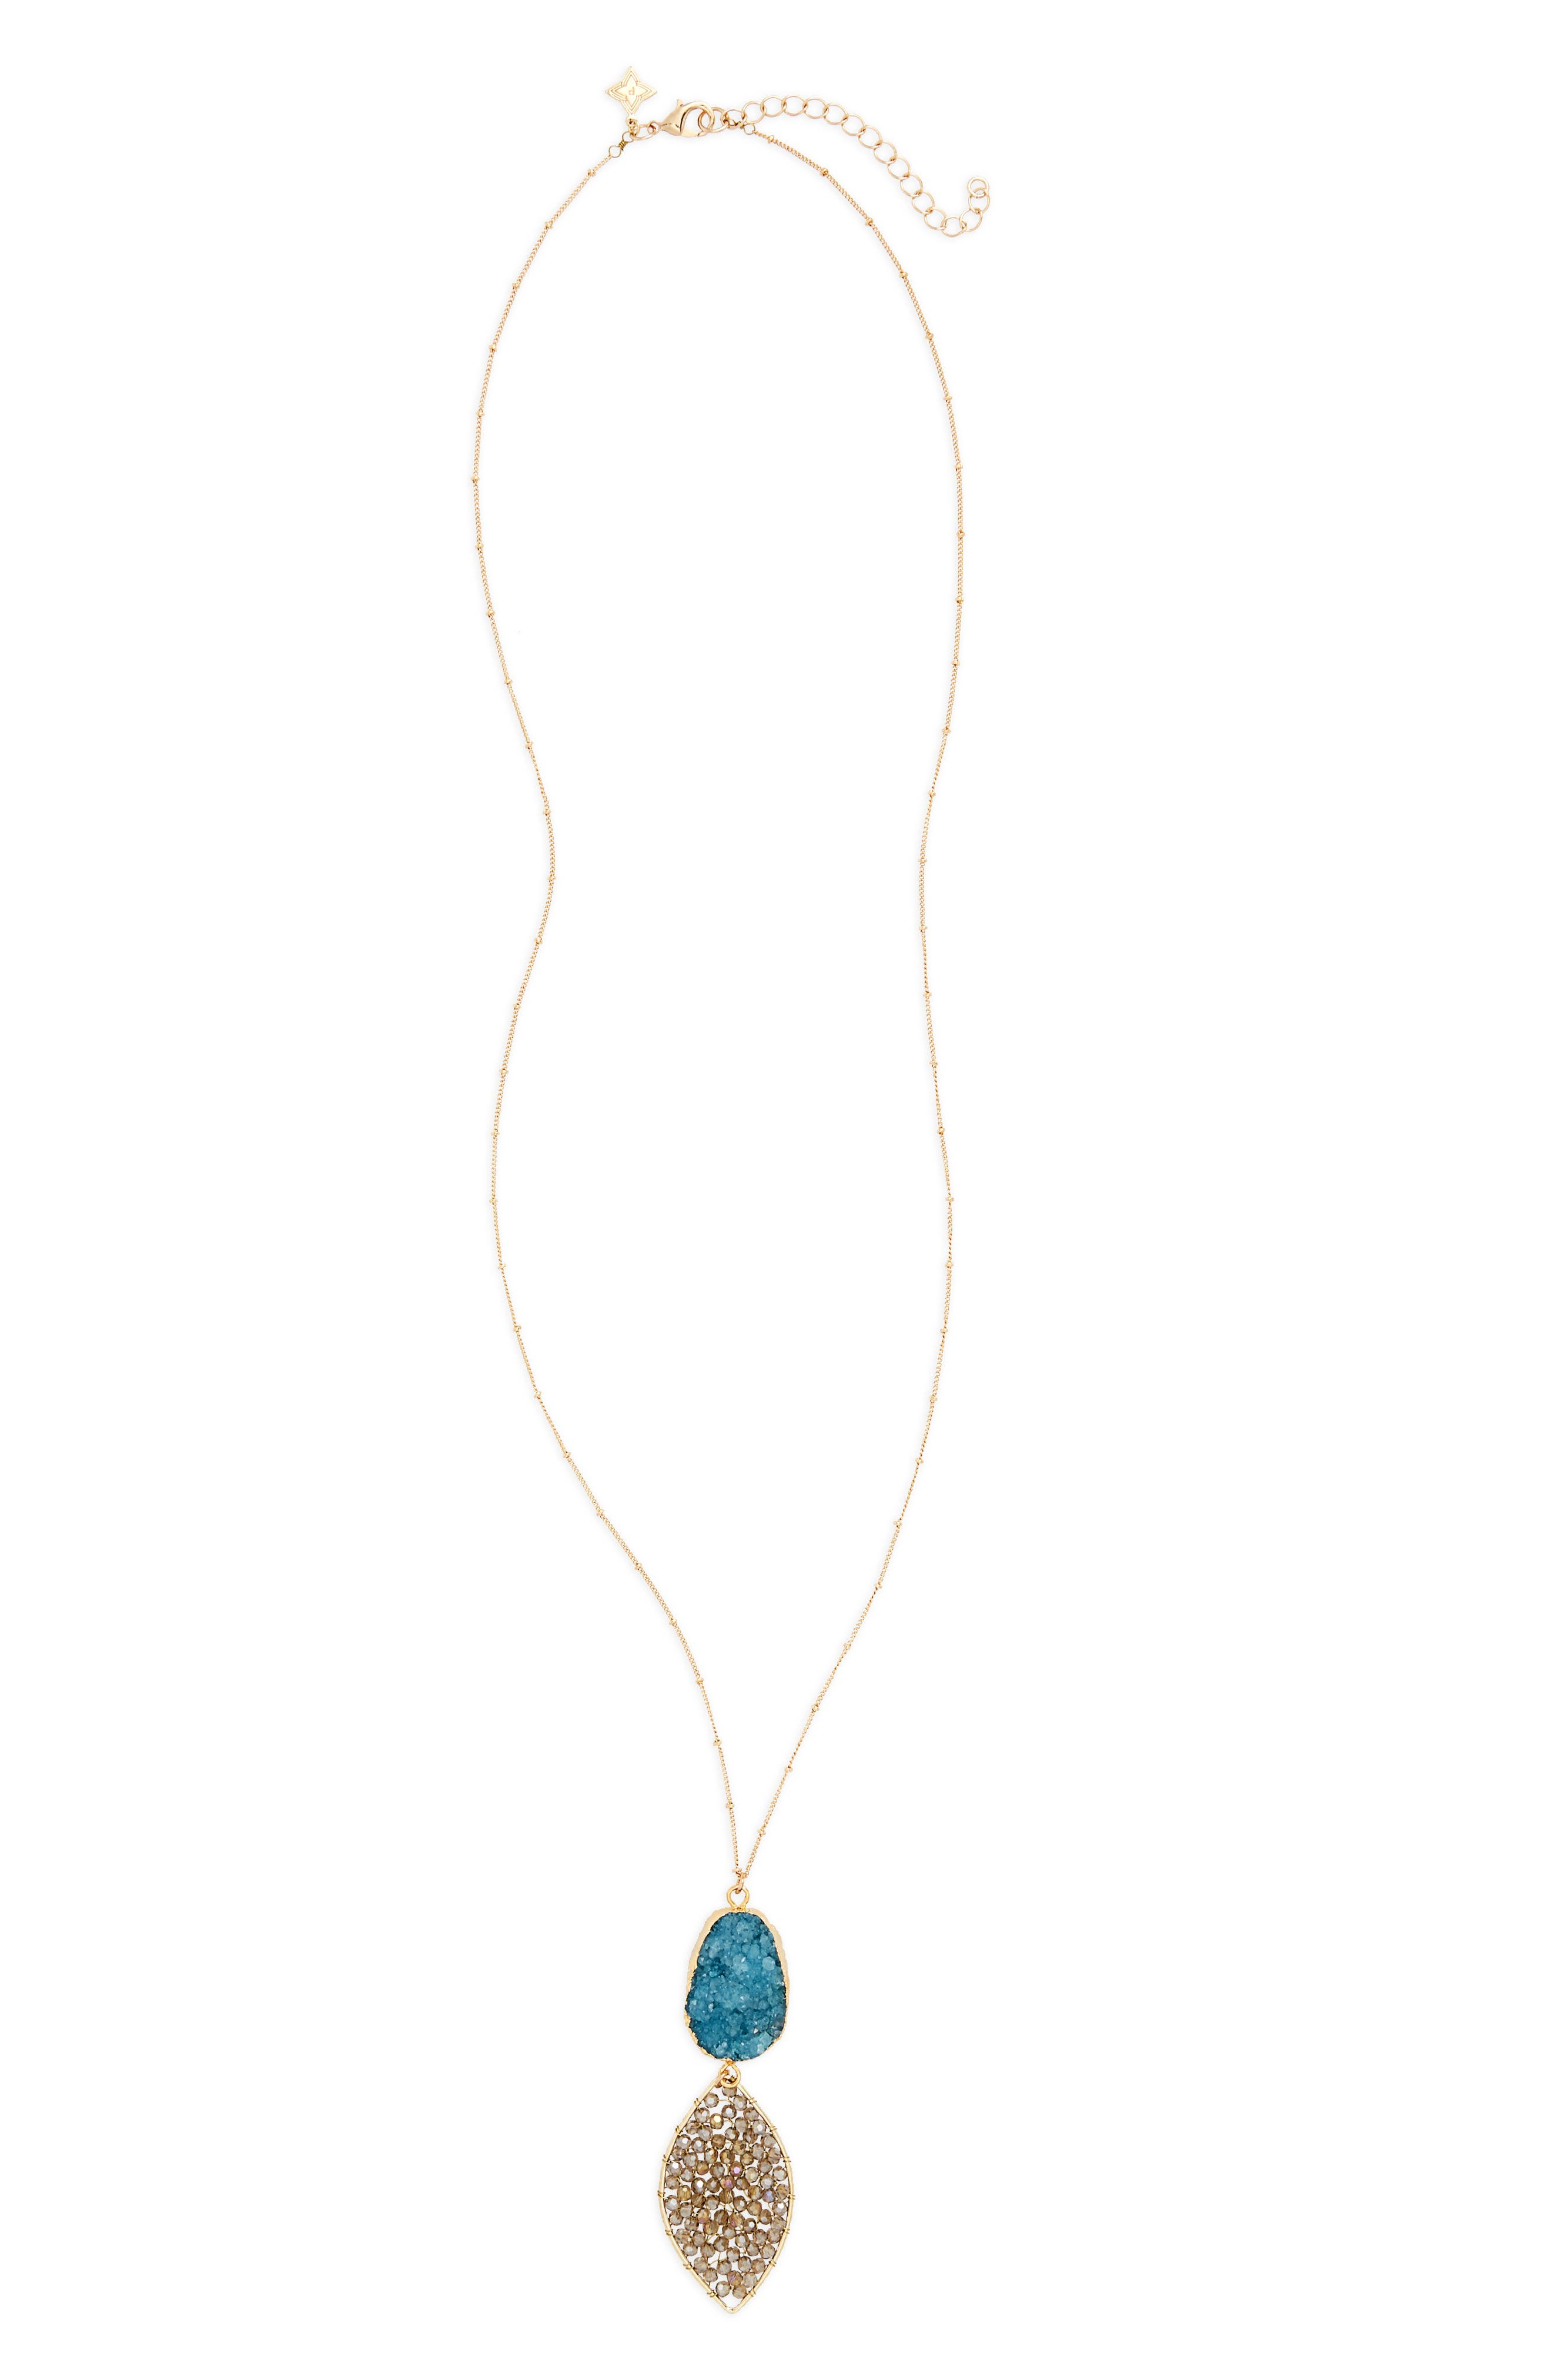 Alternate Image 1 Selected - Panacea Stone & Beaded Crystal Pendant Necklace